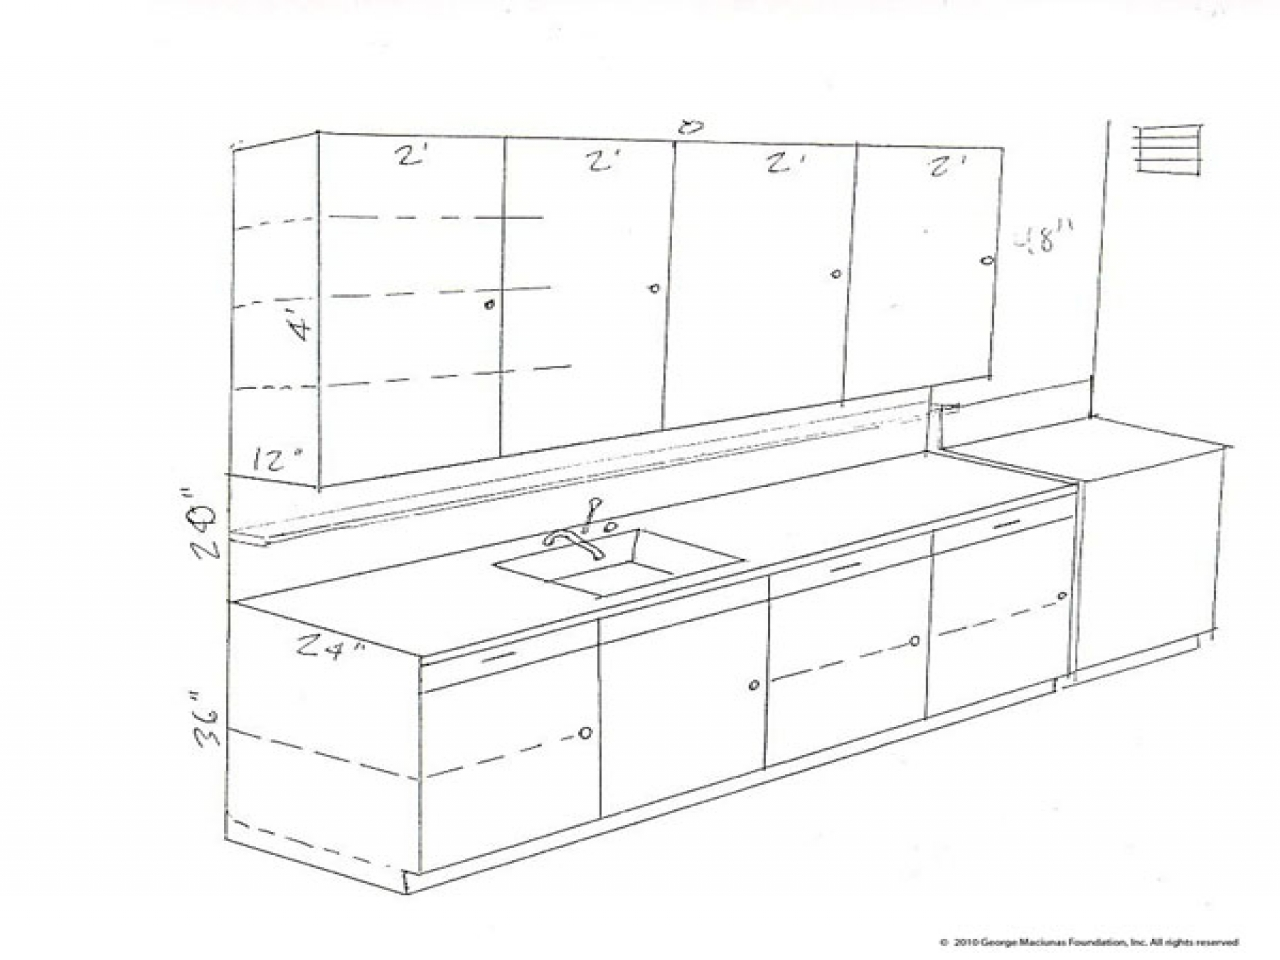 Kitchen Cabinet Drawing at GetDrawings.com | Free for personal use on oven sizes, kitchen sink cabinets, kitchen pantry, kitchen safety, kitchen rug sizes, kitchen cabinets and granite, kitchen islands, new kitchen countertops, kitchen colors tile, refrigerator sizes, kitchen worktops, new oak cabinets, kitchen glass cabinets, kitchen wall cabinets, kitchen designs, small kitchen remodeling ideas, kitchen ranges, kitchen layout sizes, kitchen design, kitchen cabinets at lowe's, kitchen sink base sizes, kitchen accessories, choosing kitchen countertops, kitchen handles, kitchen remodels, kitchen and bath cabinets, kitchen hazards, kitchen dishwasher sizes, kitchen kitchen cabinets, kitchen sinks, new kitchen cabinets, new kitchen ideas, kitchen appliances, standard pantry sizes, kitchen sink protectors in various sizes, new kitchen appliances, kitchen remodeling designs, kitchen remodeling plans, kitchen base cabinets,